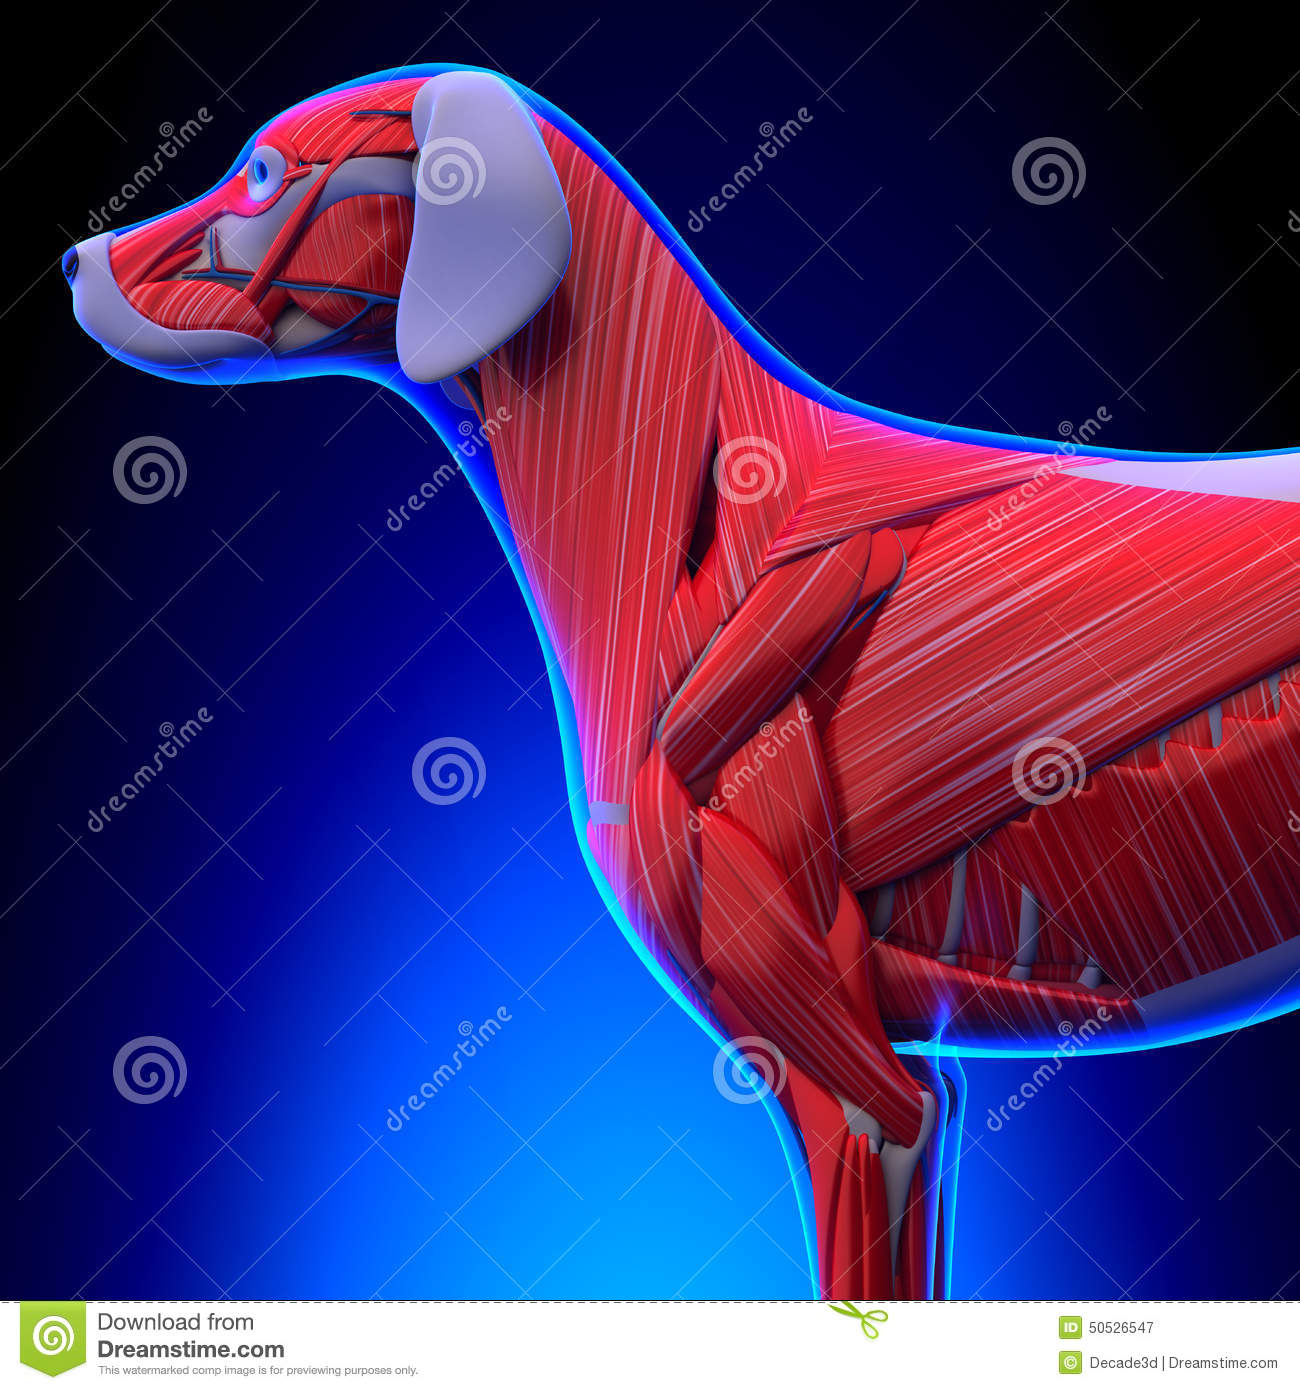 Dog Muscles Anatomy - Anatomy Of A Male Dog Muscles Stock ...